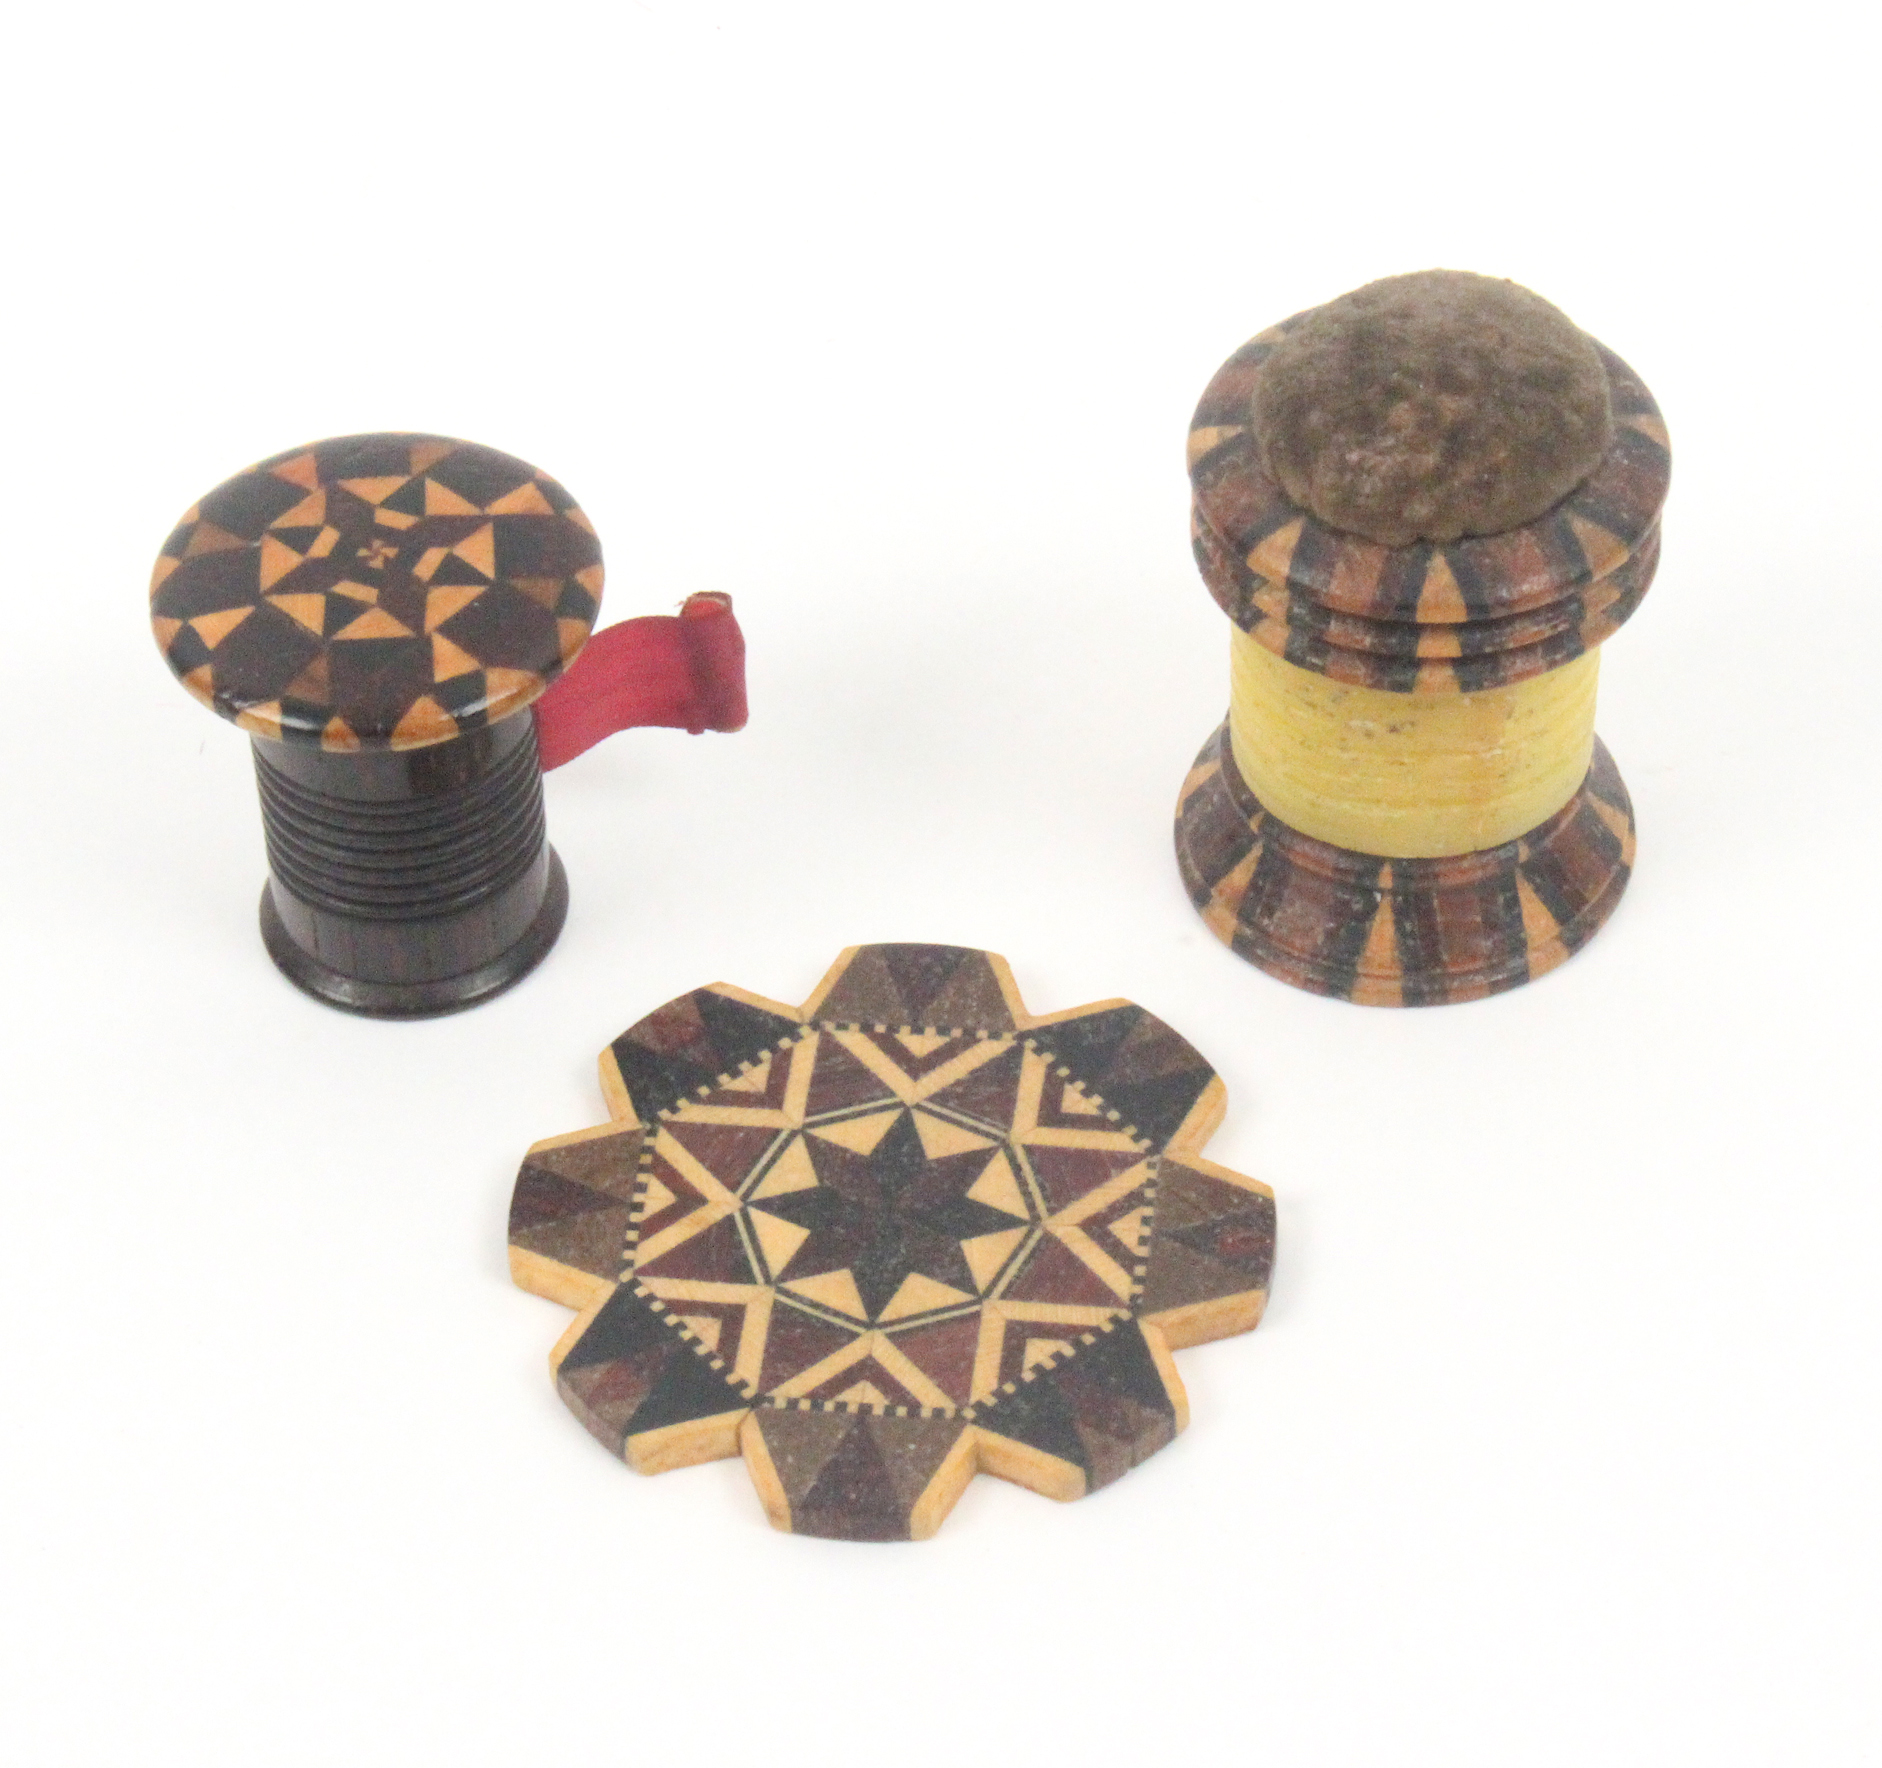 Tunbridge ware - sewing - three pieces, comprising a cylinder form combination pin cushion/waxer